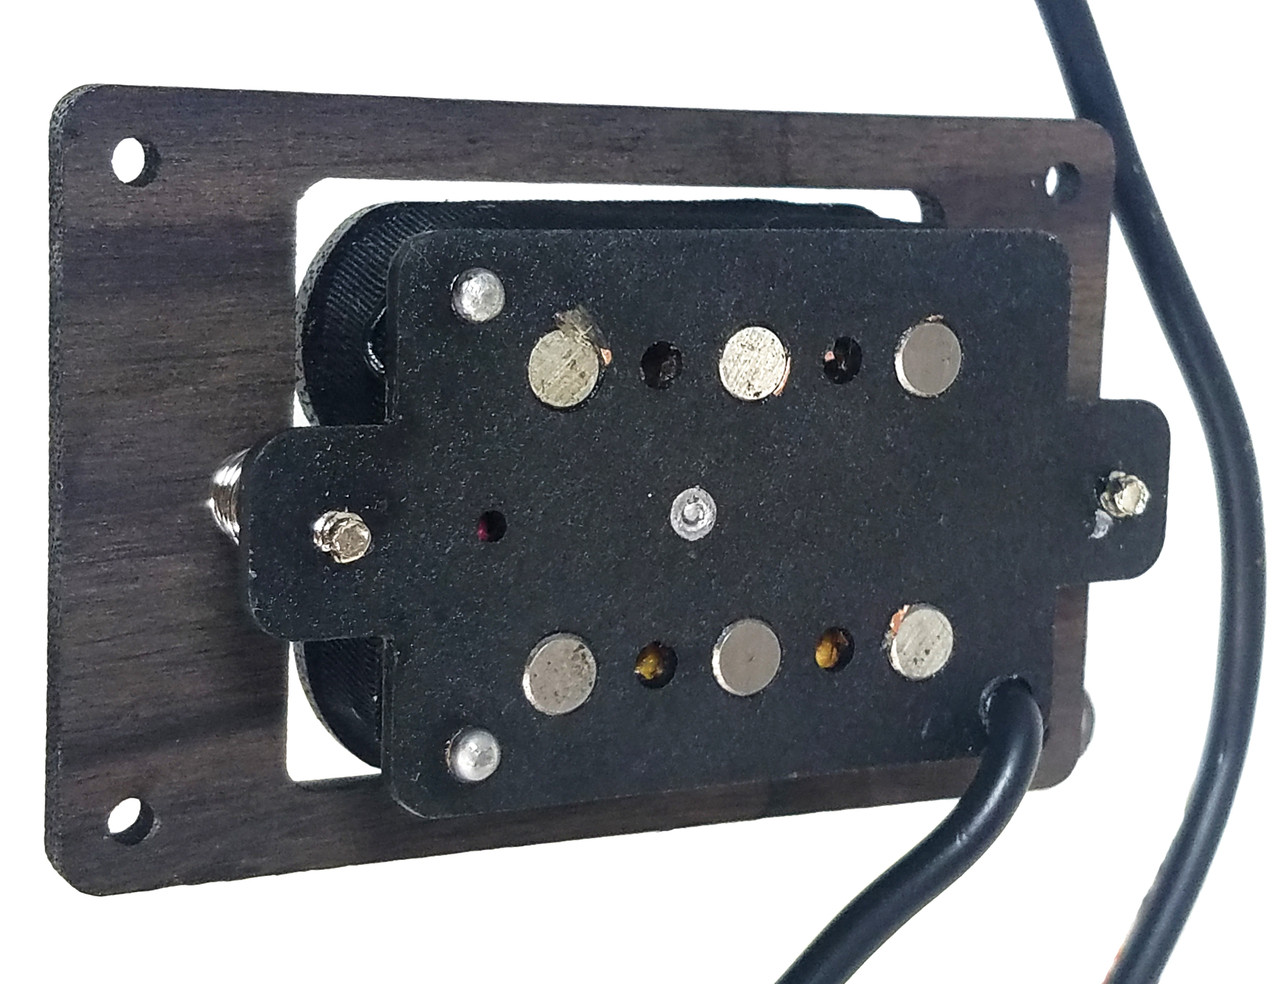 Deltabucker 3 String Rosewood Cigar Box Guitar Humbucker Pickup Pre Wiring Wired With